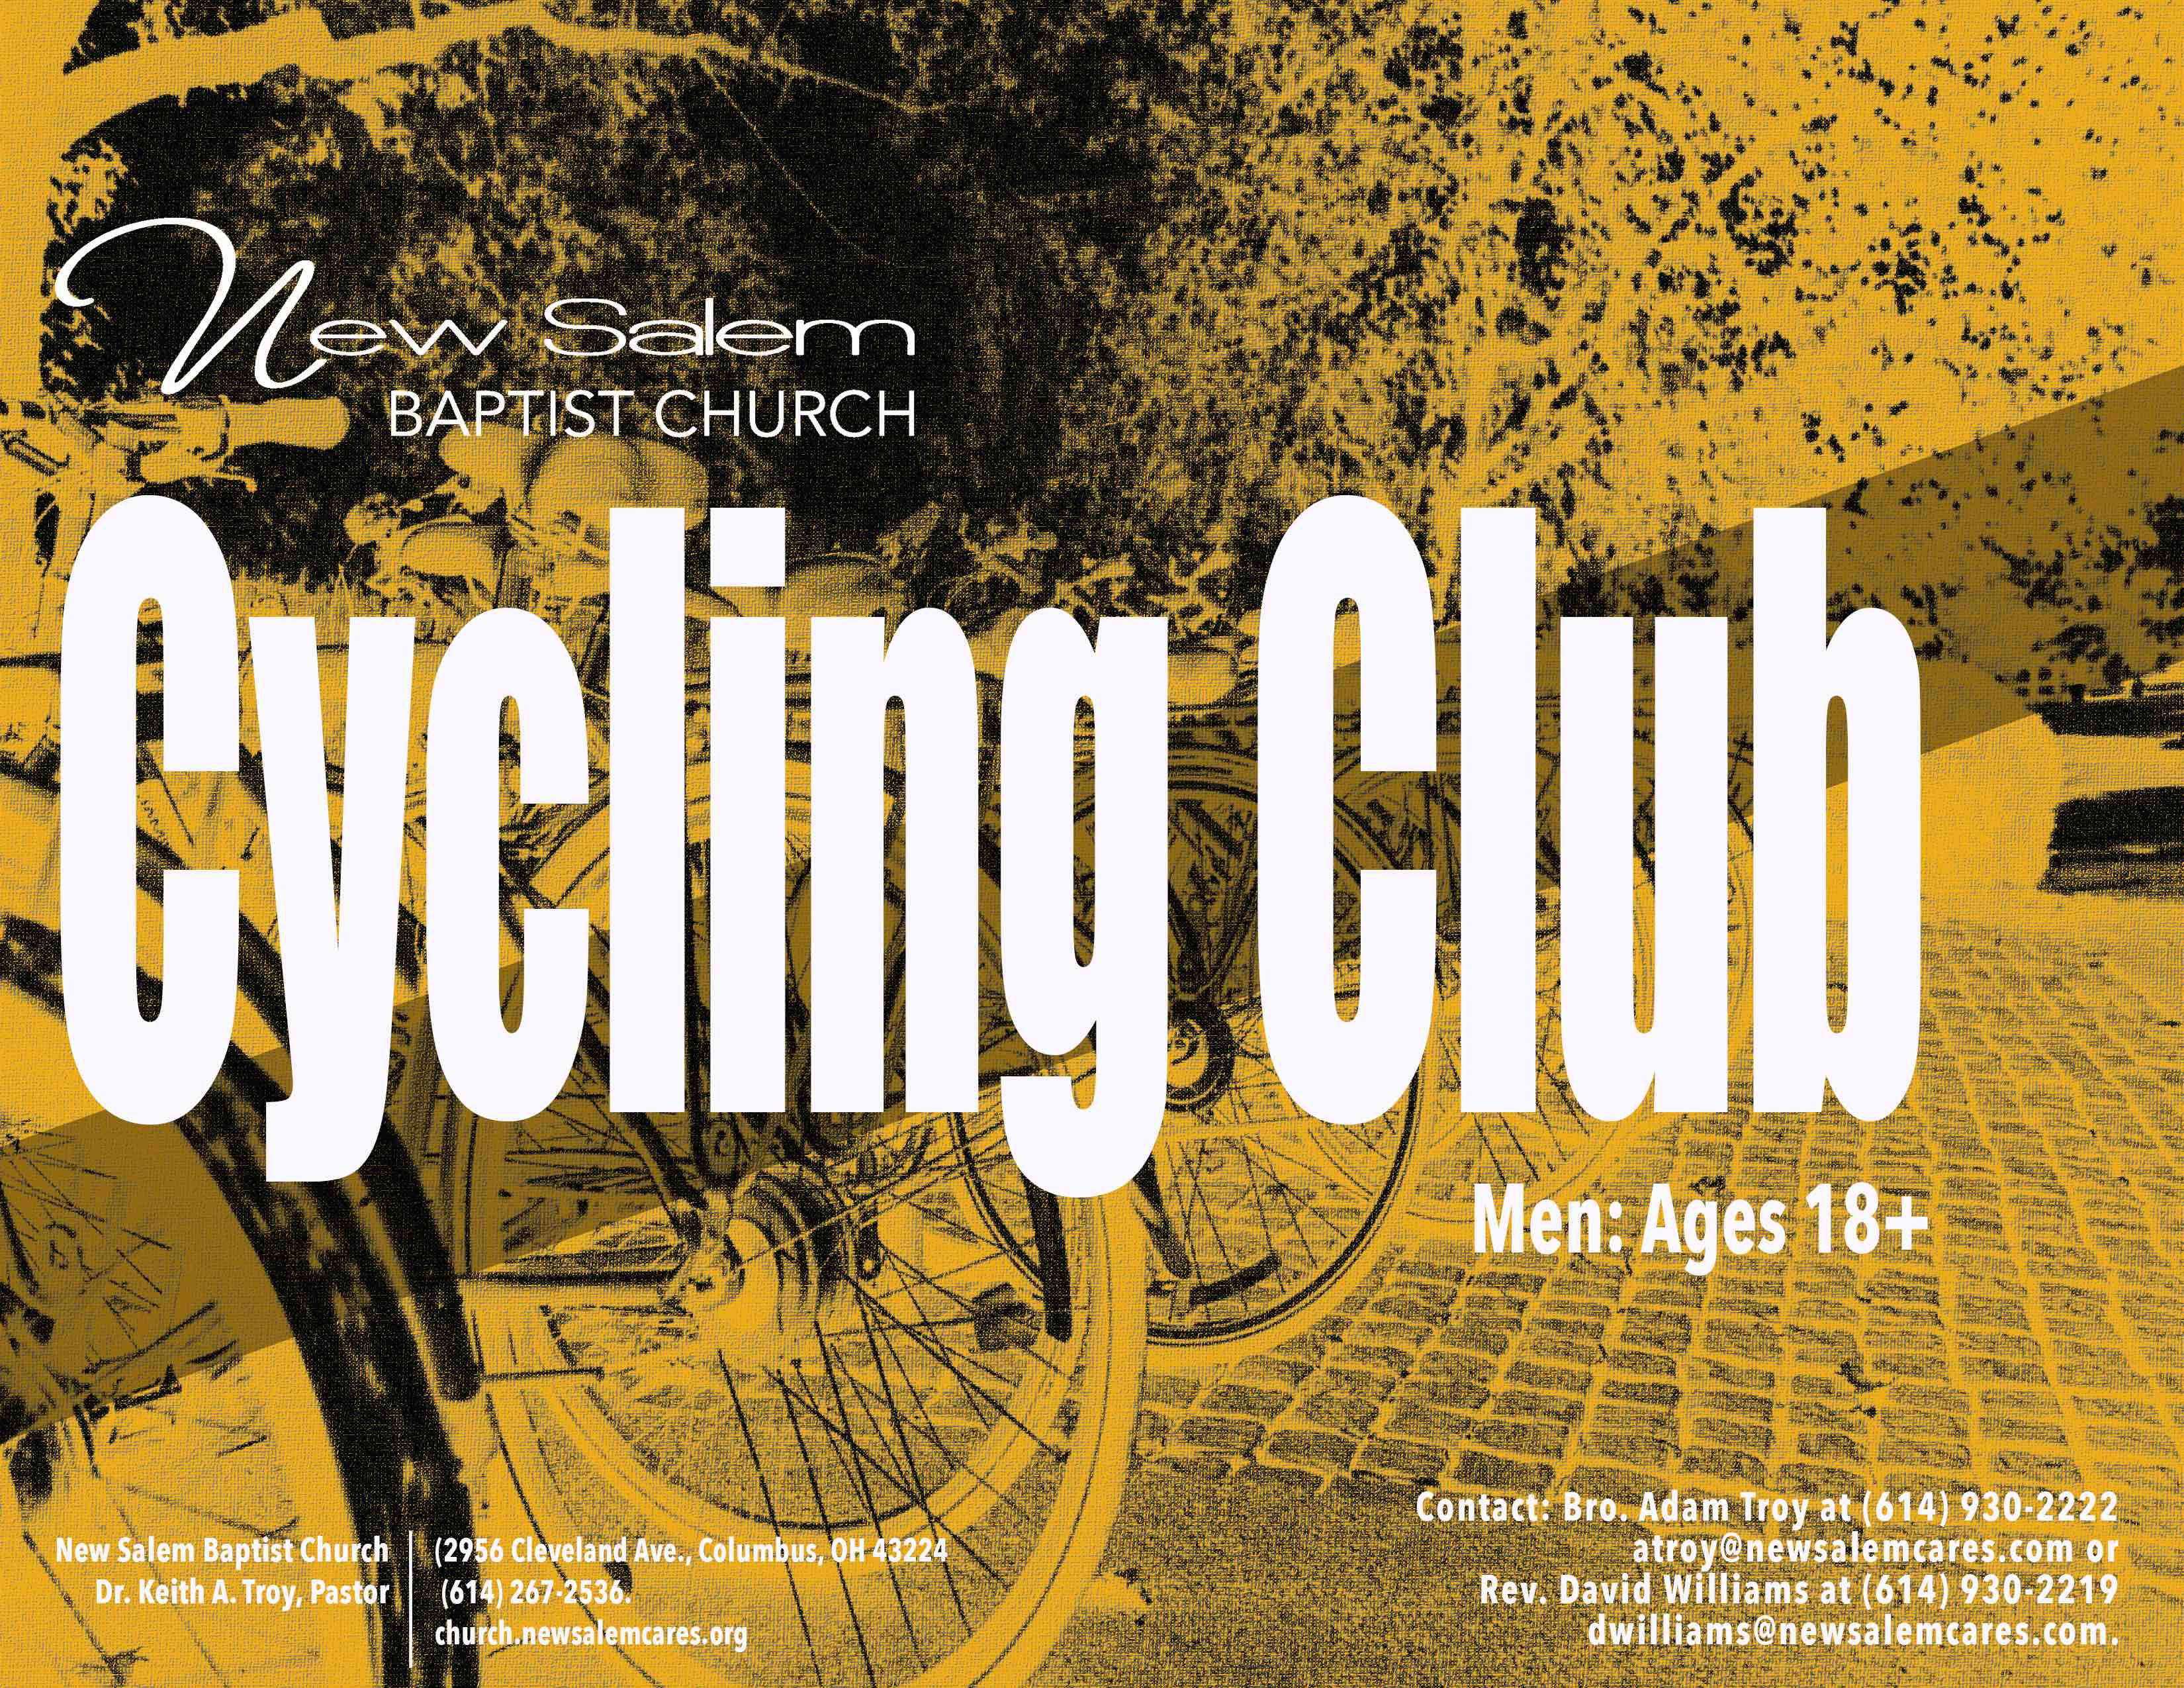 Men's Cycling Club